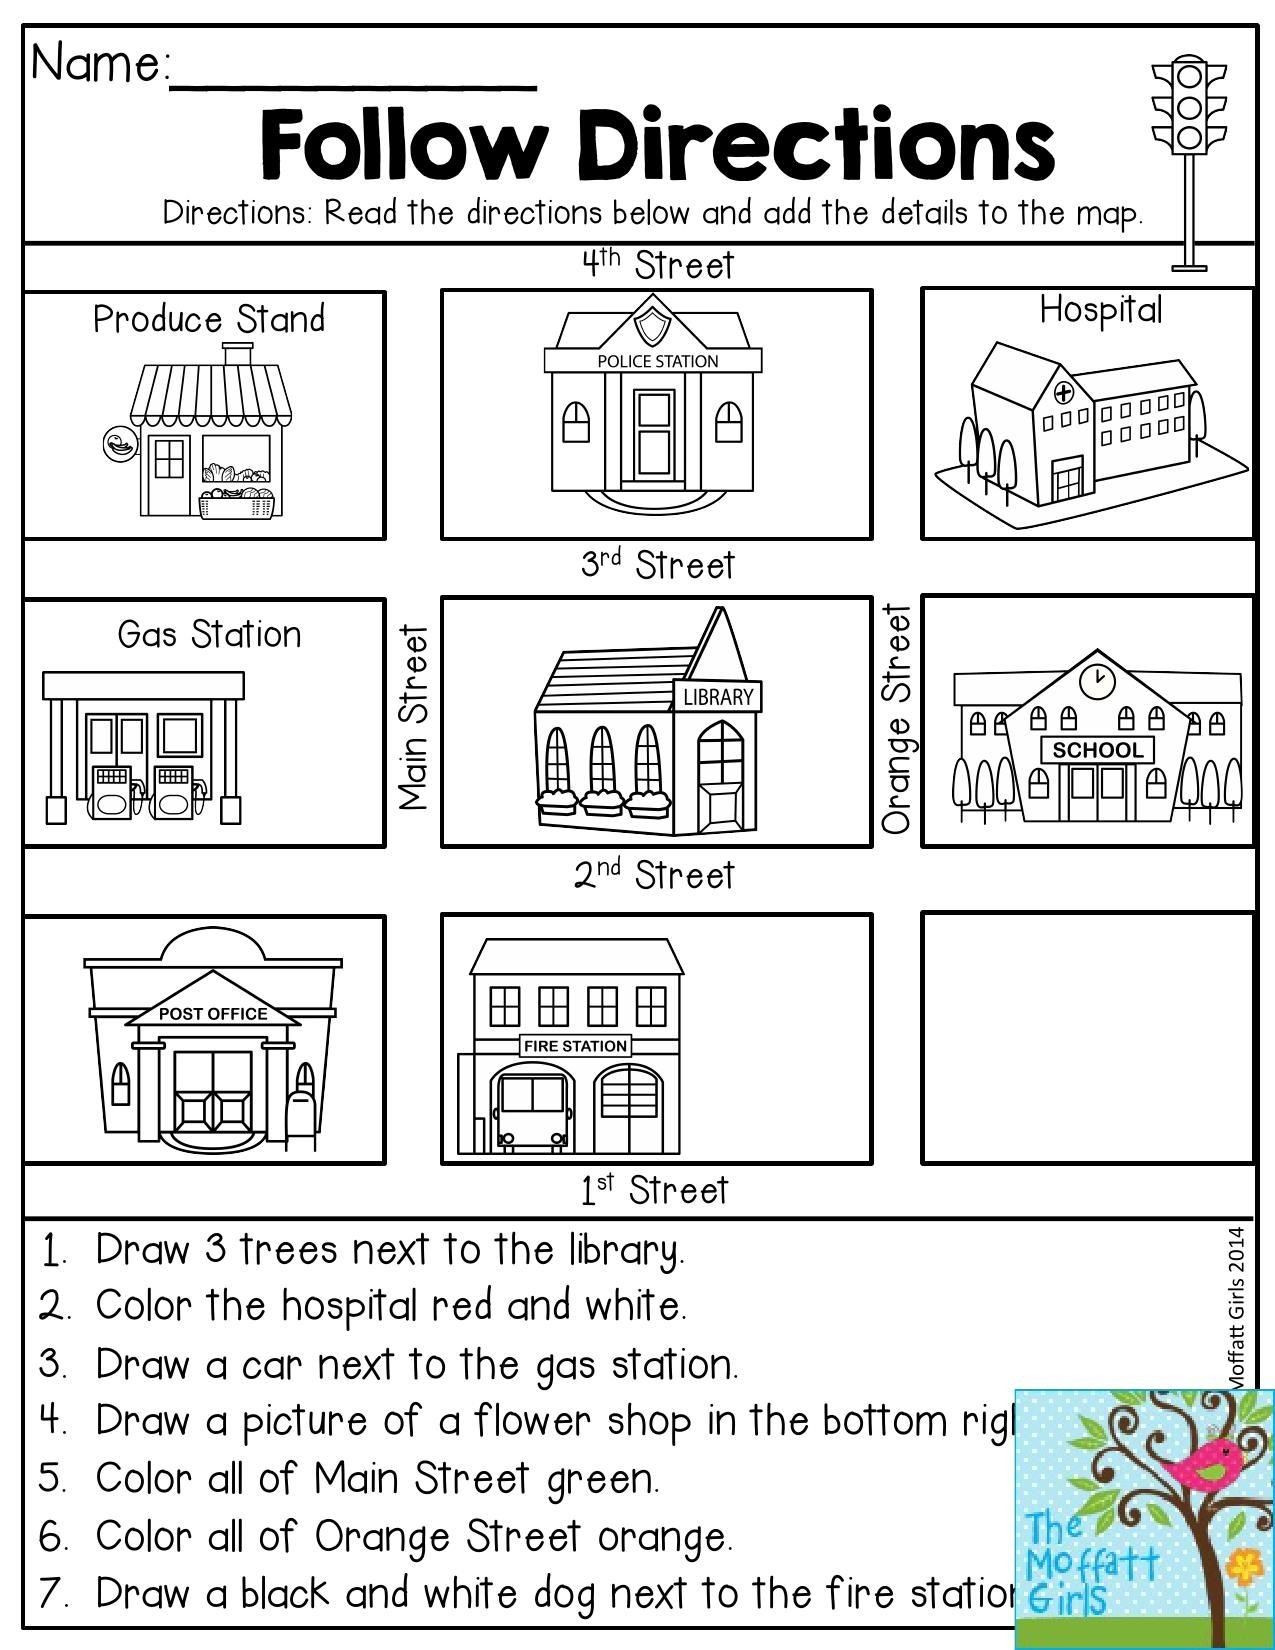 Vocabulary Worksheets for 1st Graders Free 1st Grade Vocabulary Worksheets